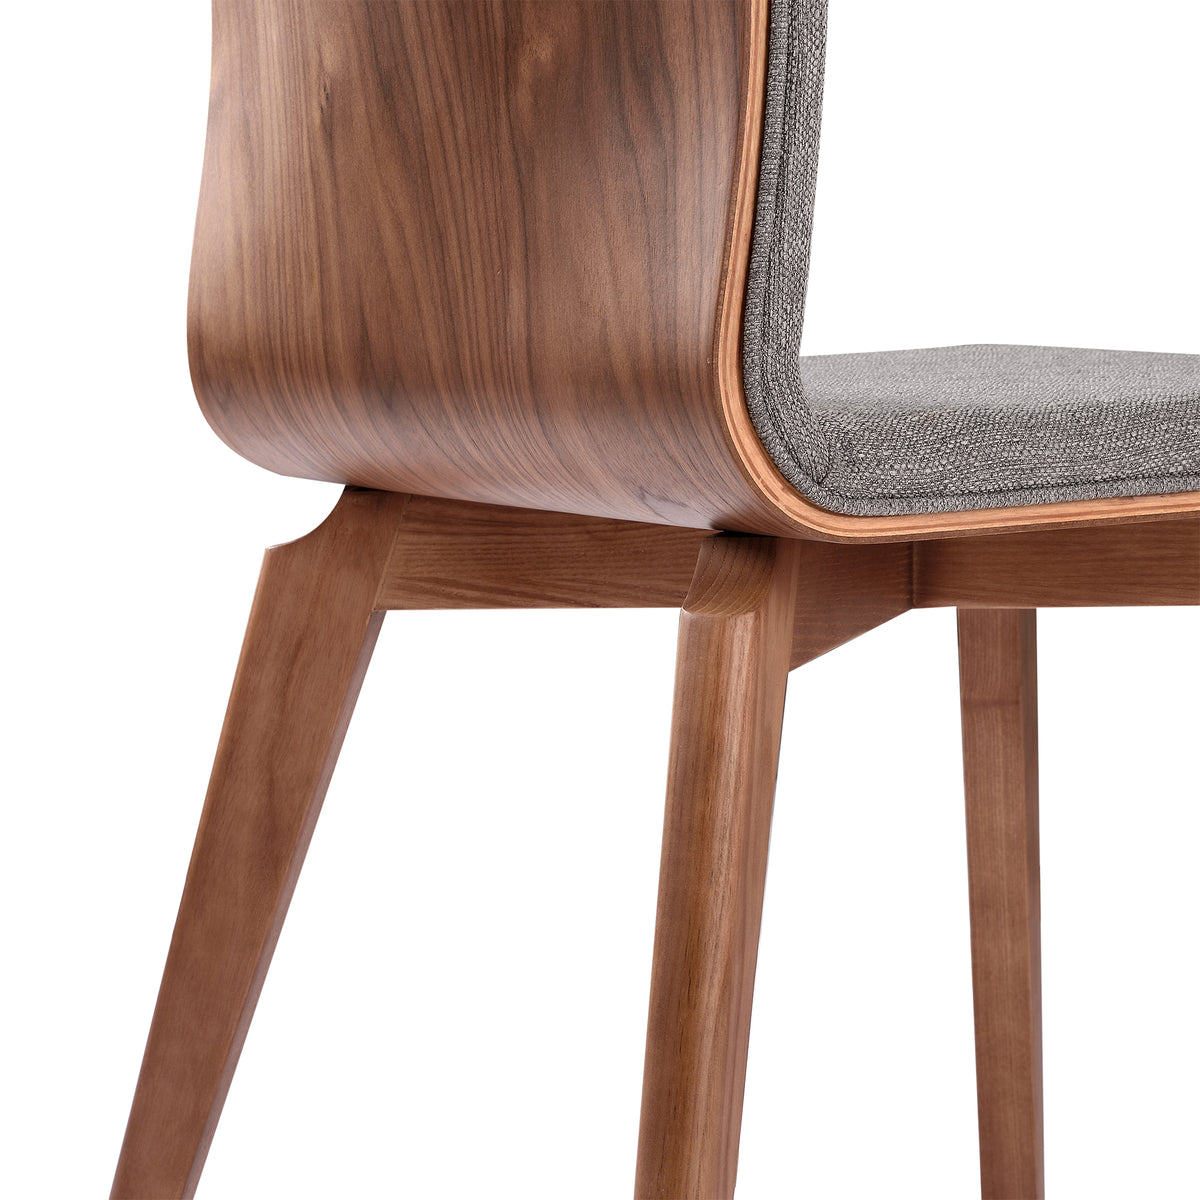 Hira Dining Chair in Walnut Finish and Gray Fabric - Set of 2